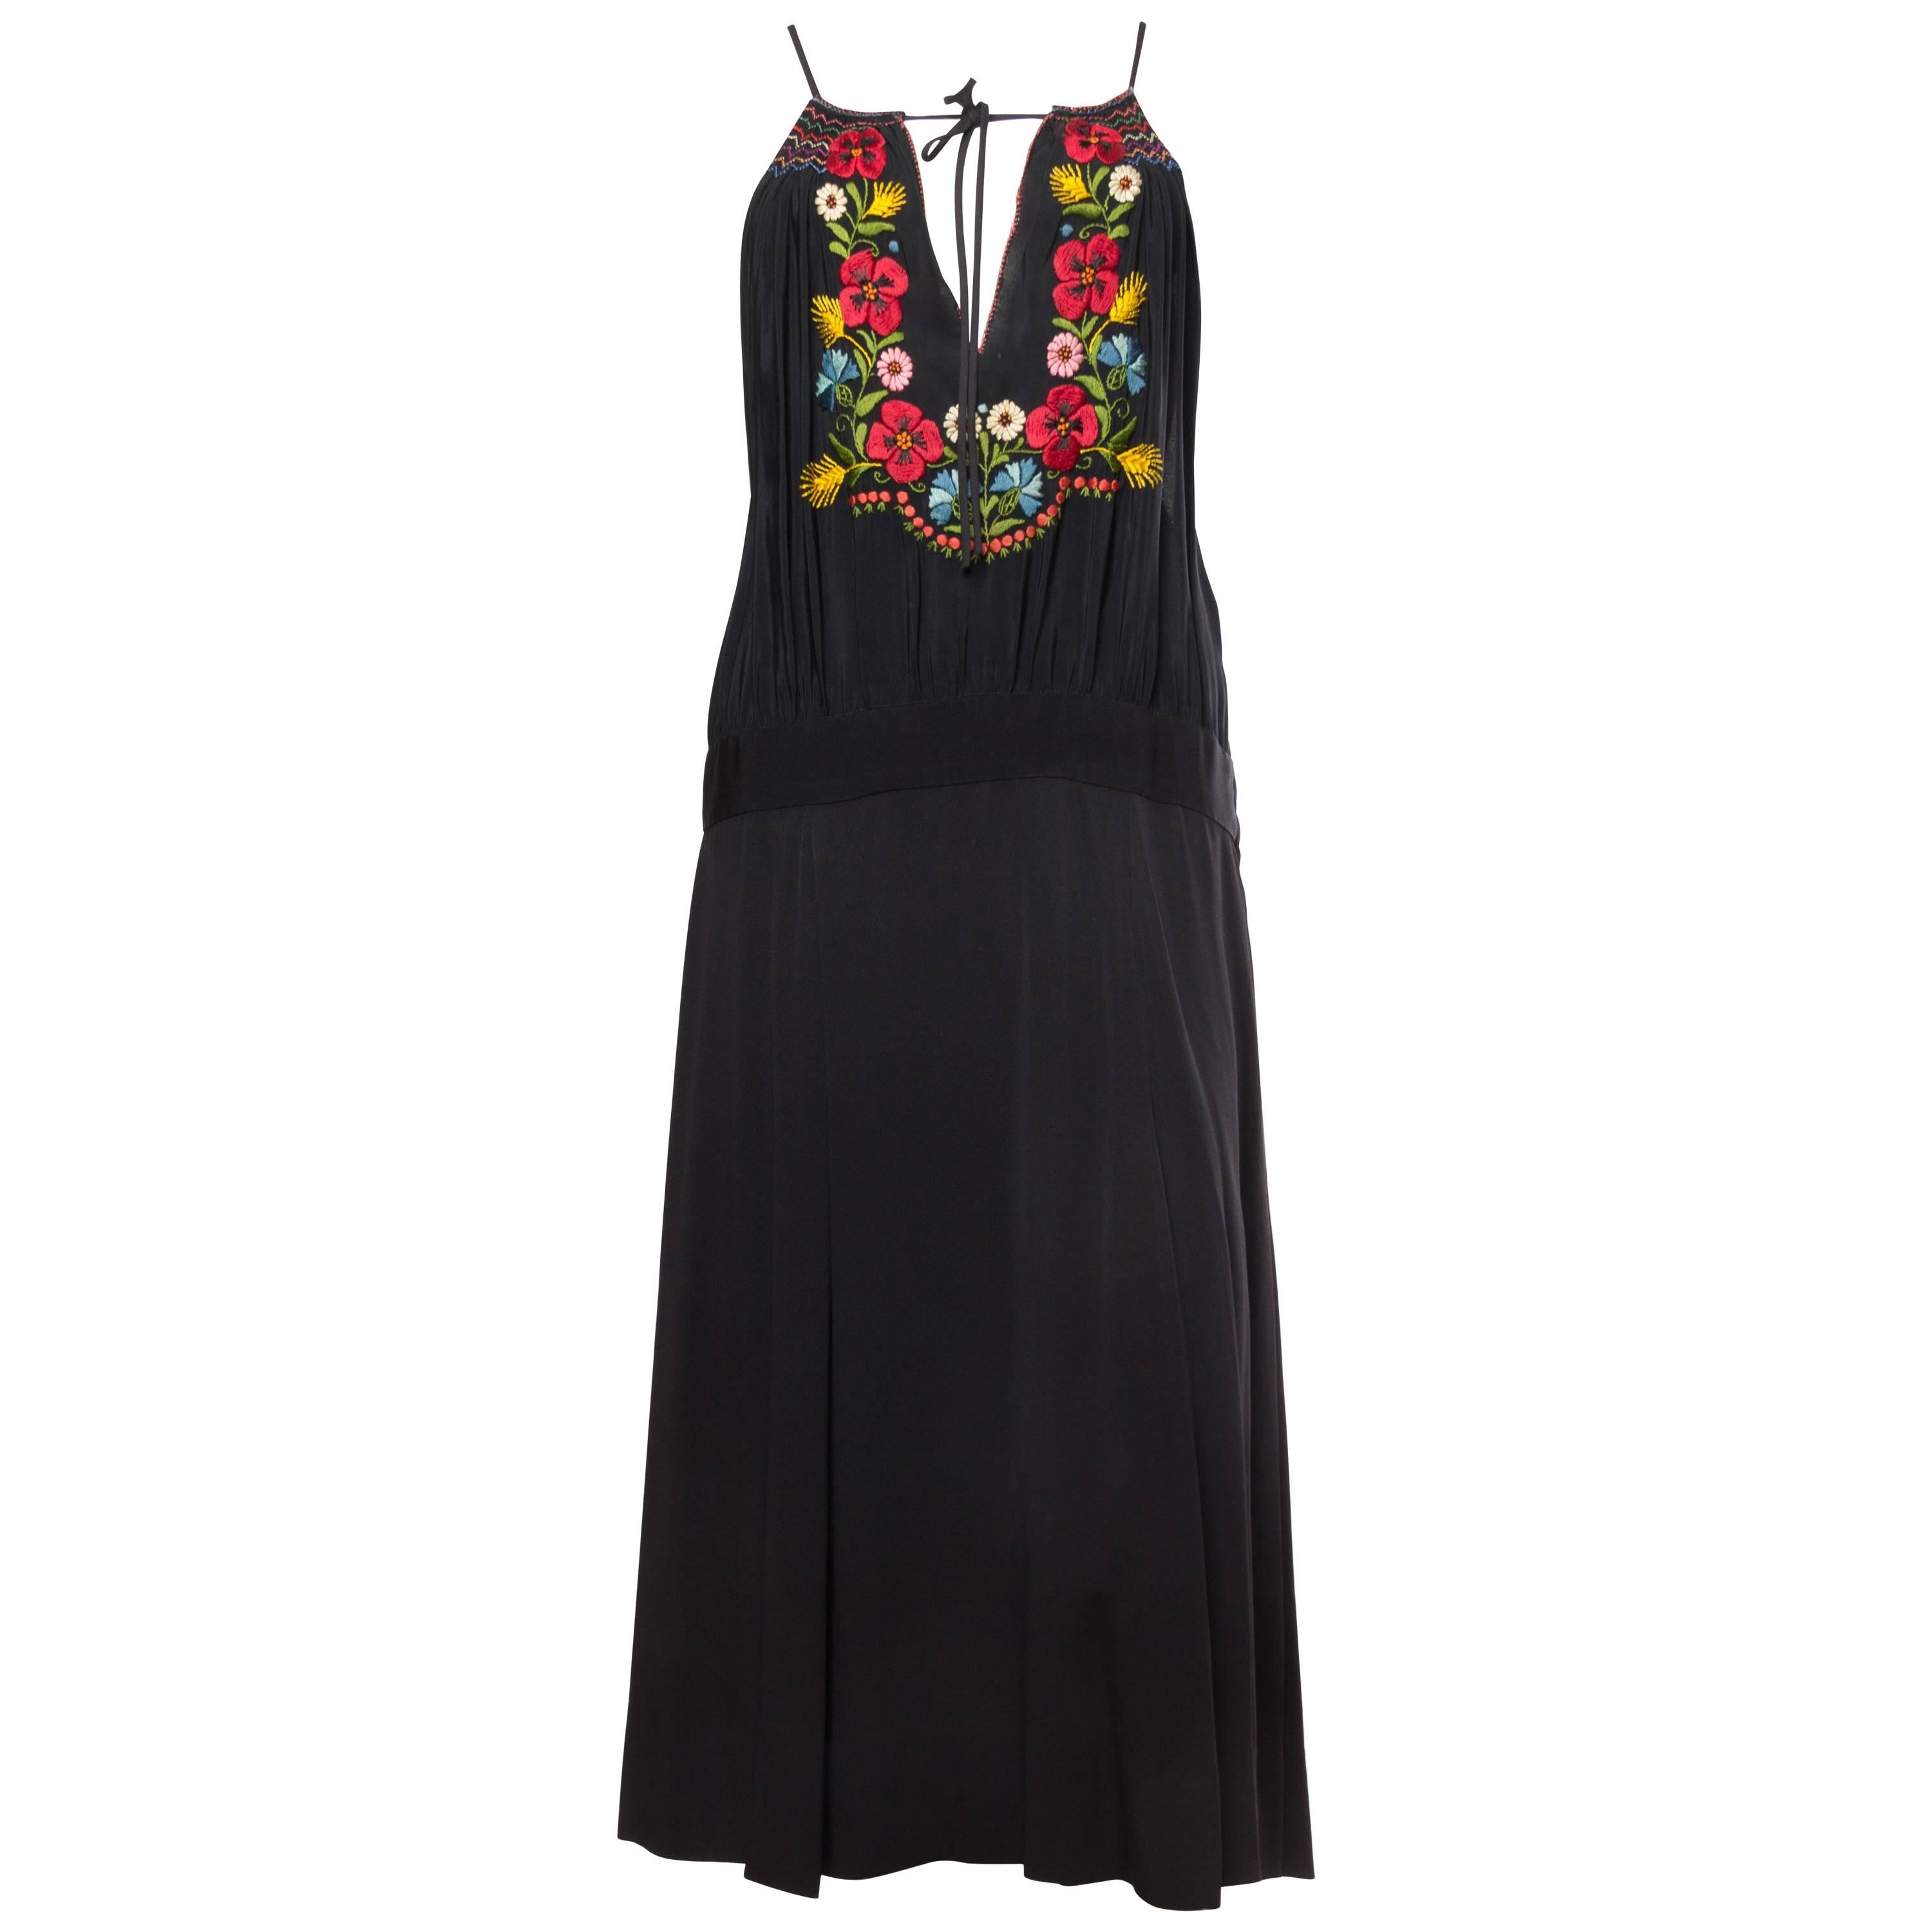 MORPHEW COLLECTION Black Rayon Bohemian Embroidered Dress With Flowers & Hand S